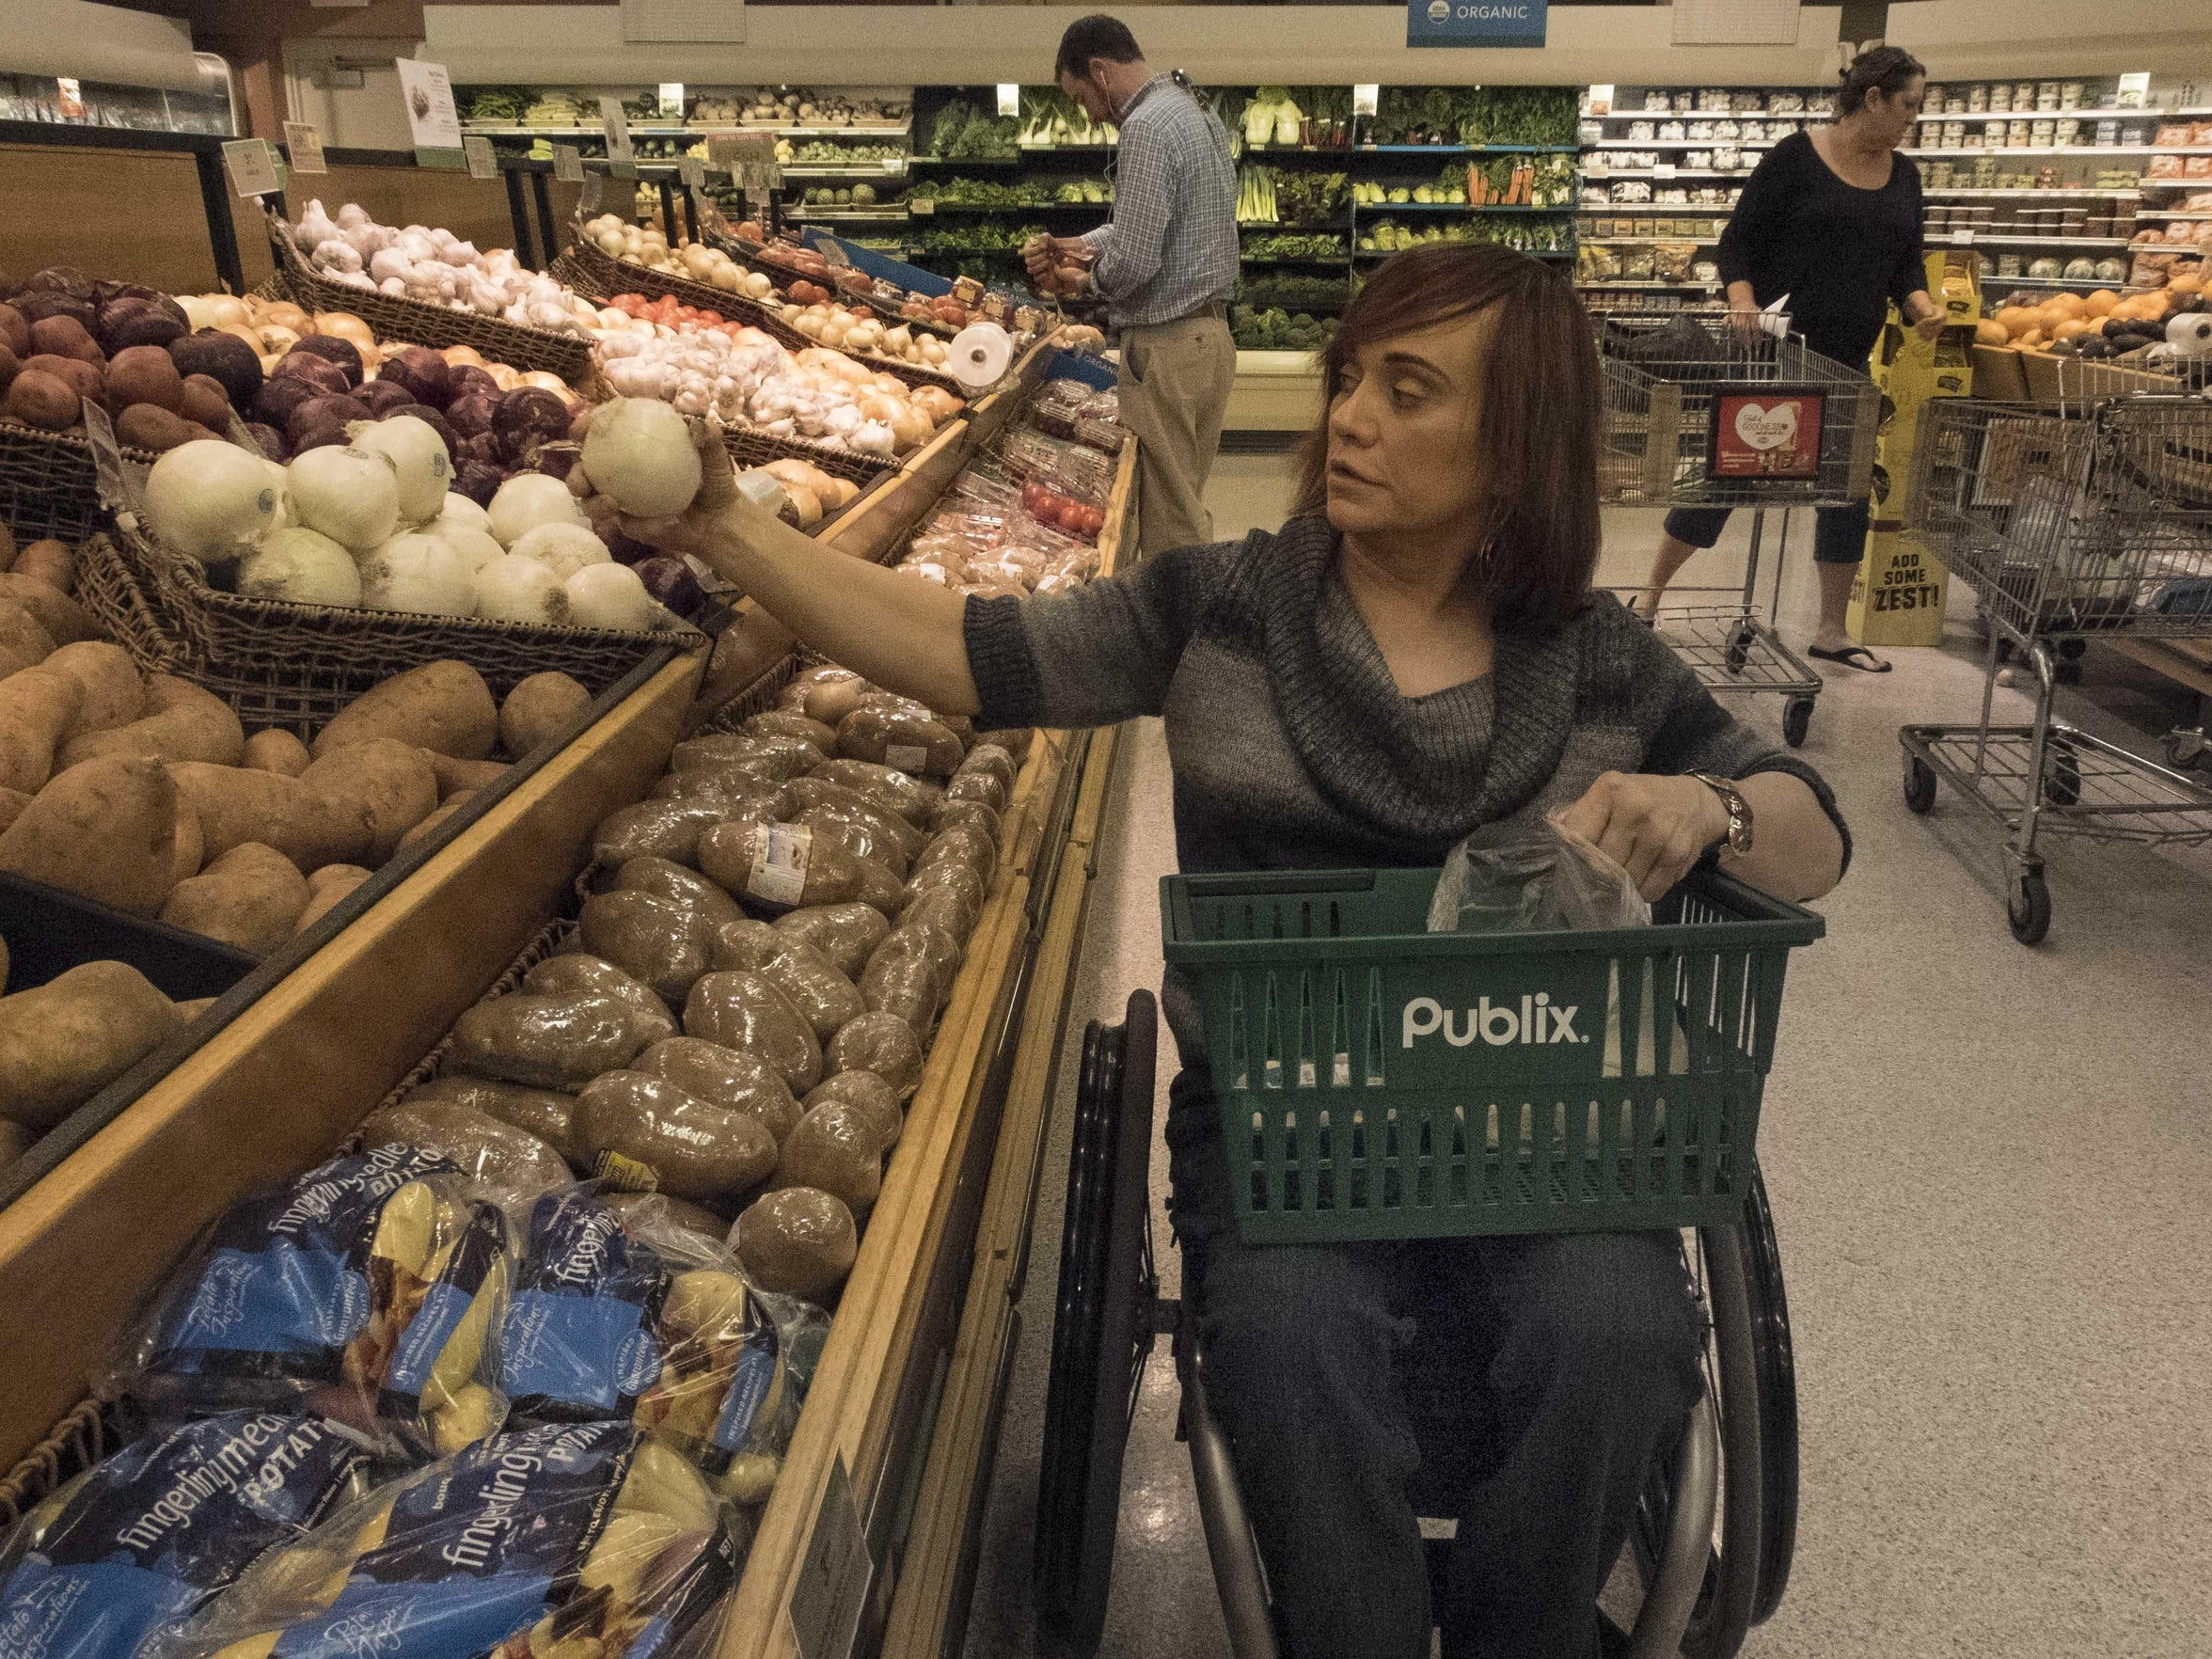 Robin Patty shops at a grocery store in her neighborhood